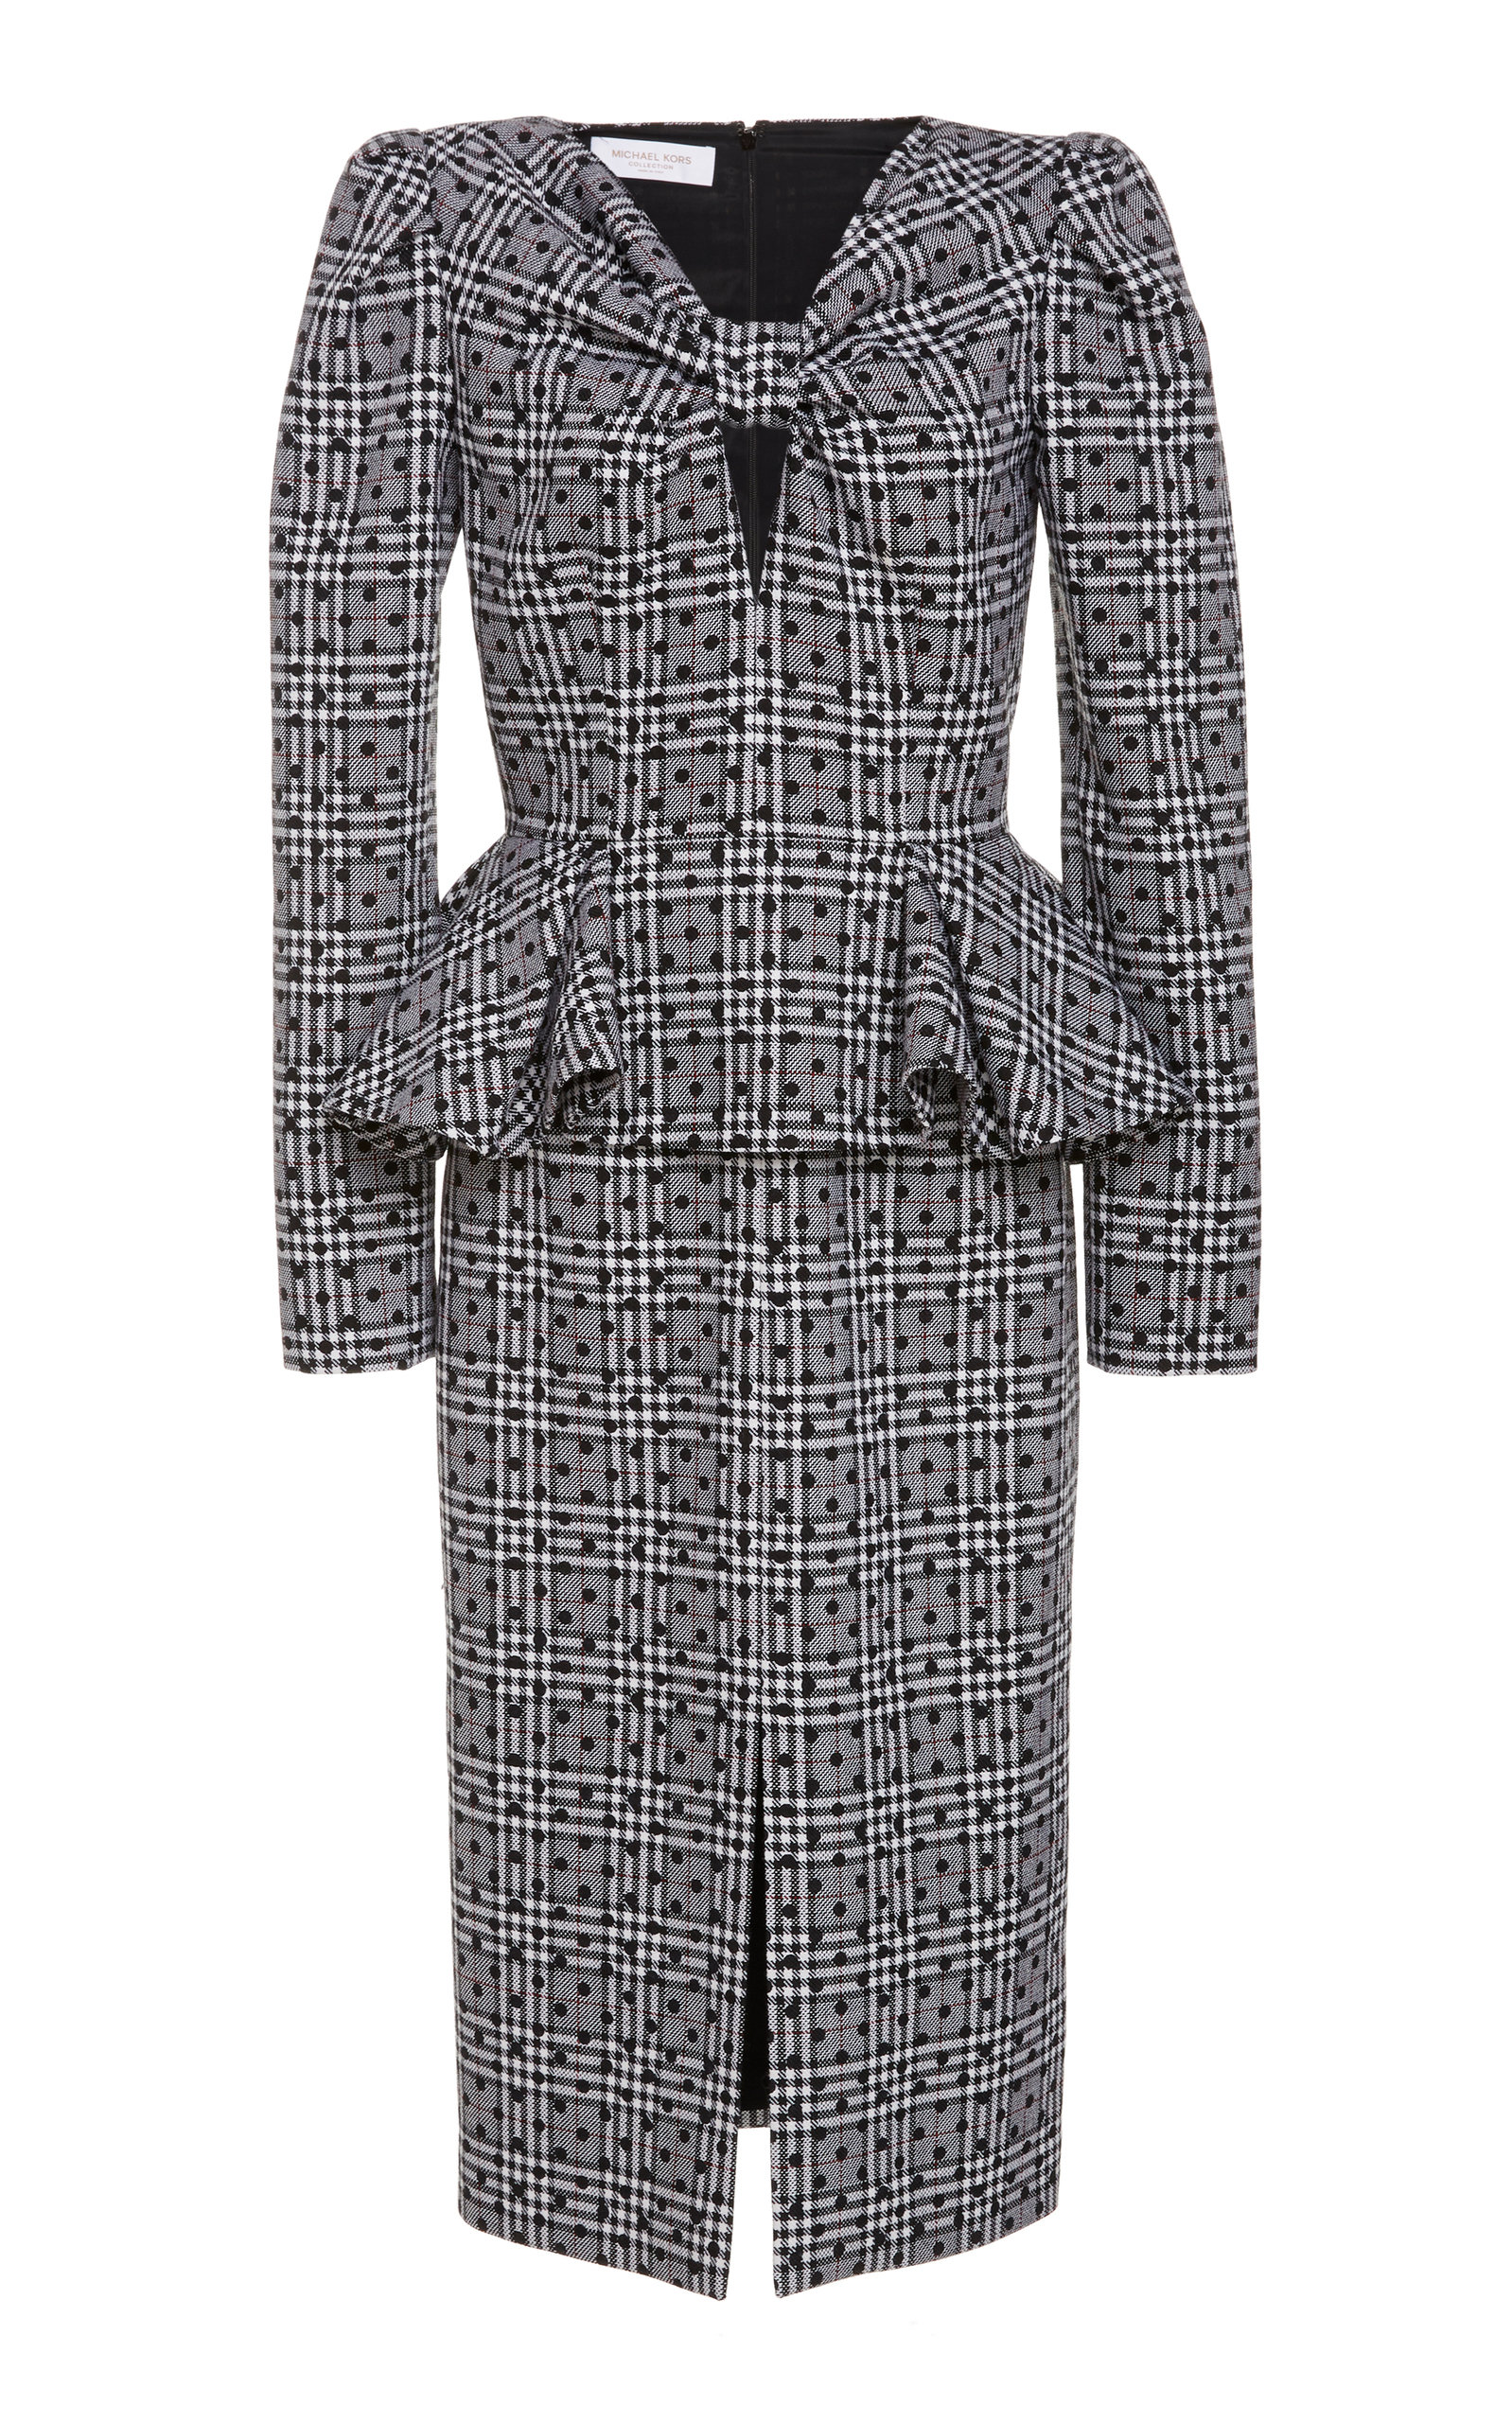 Buy Michael Kors Collection Multi-Print Cut-Out Wool Peplum Dress online, shop Michael Kors Collection at the best price